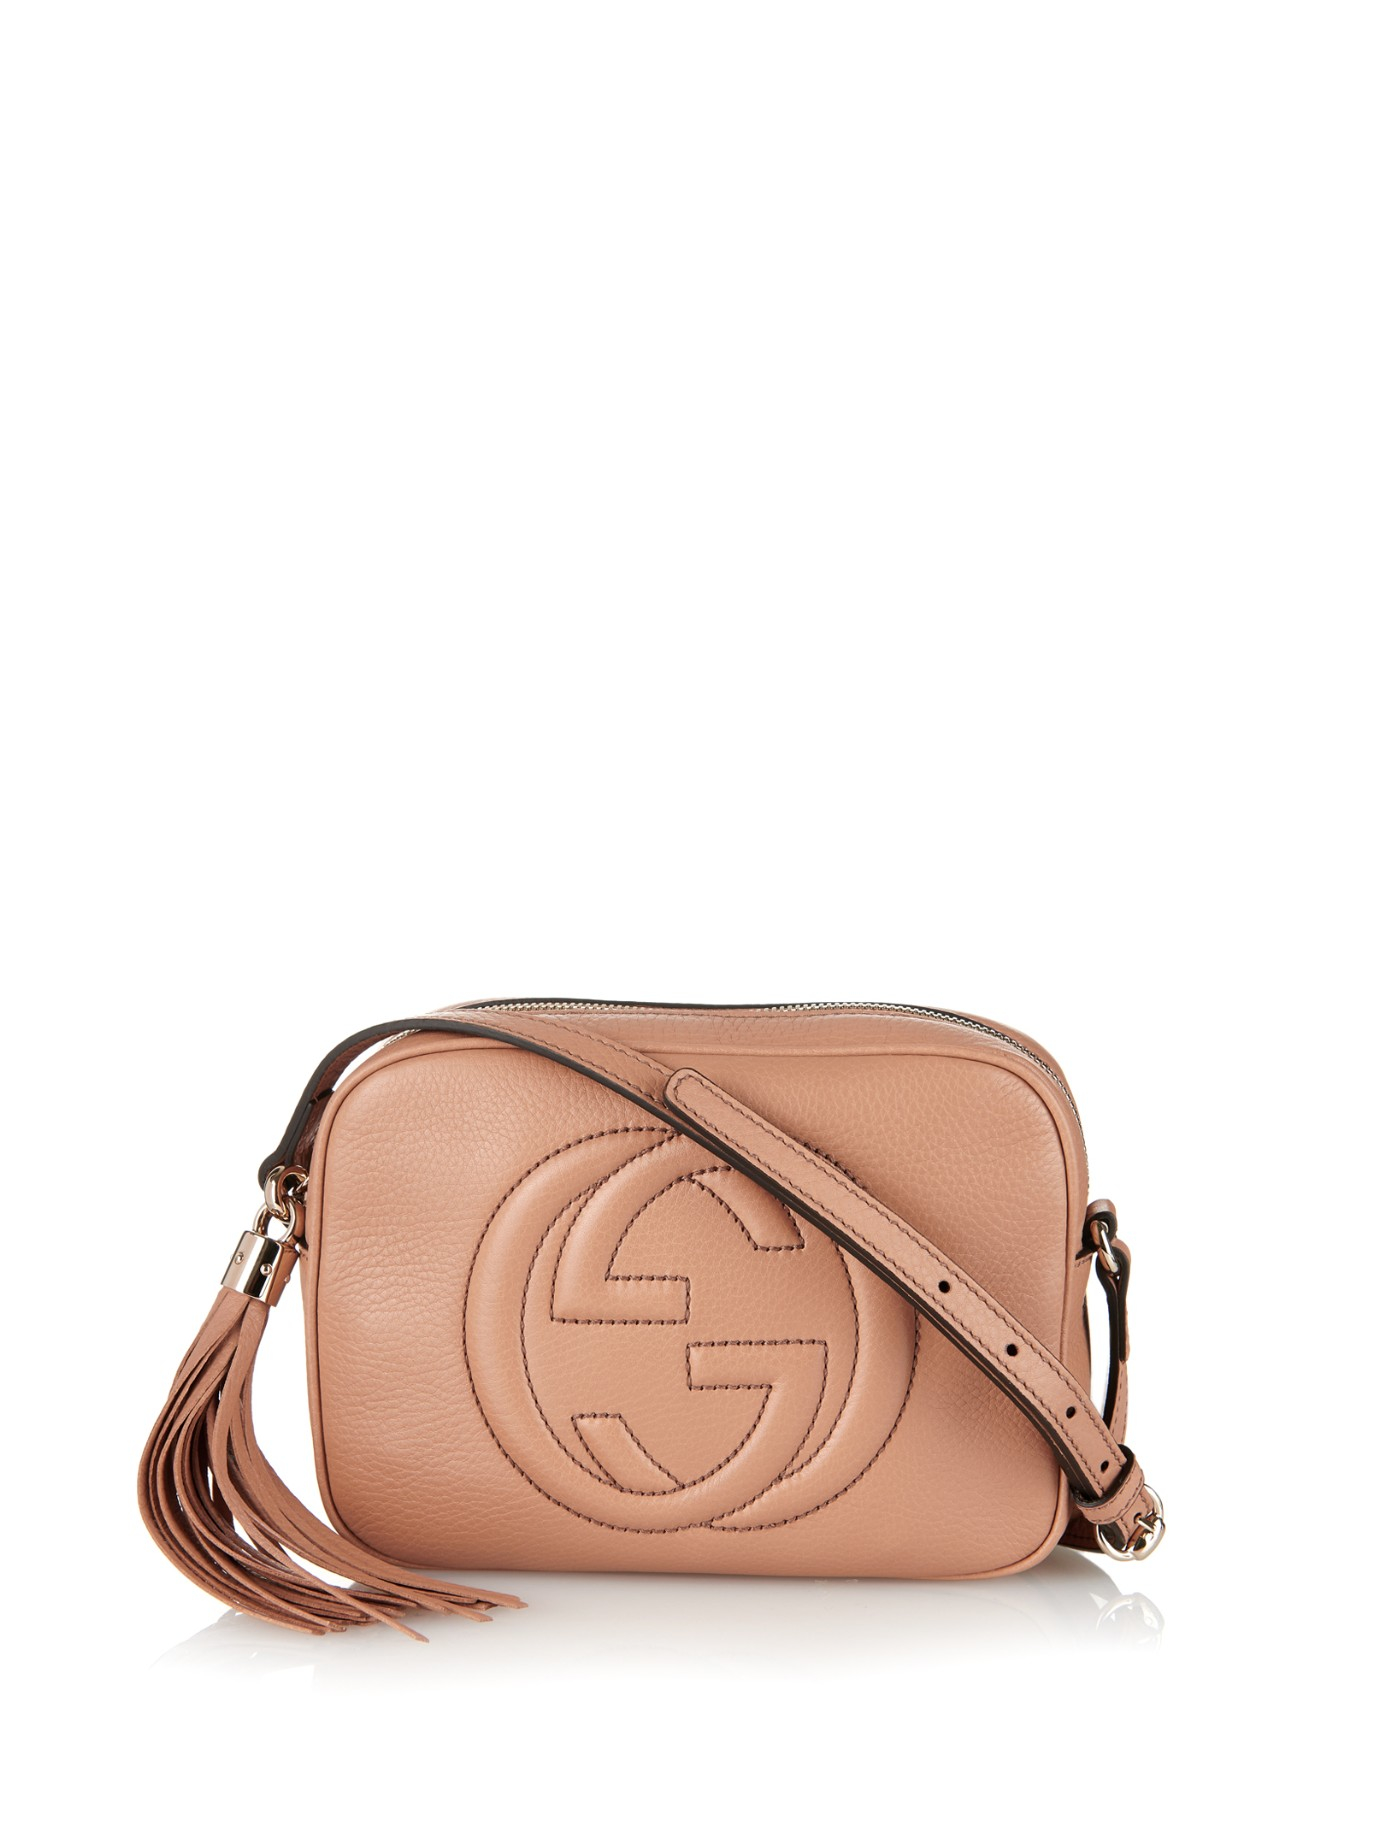 f6f7312cc18 Gallery. Previously sold at  MATCHESFASHION.COM · Women s Gucci Soho Bag